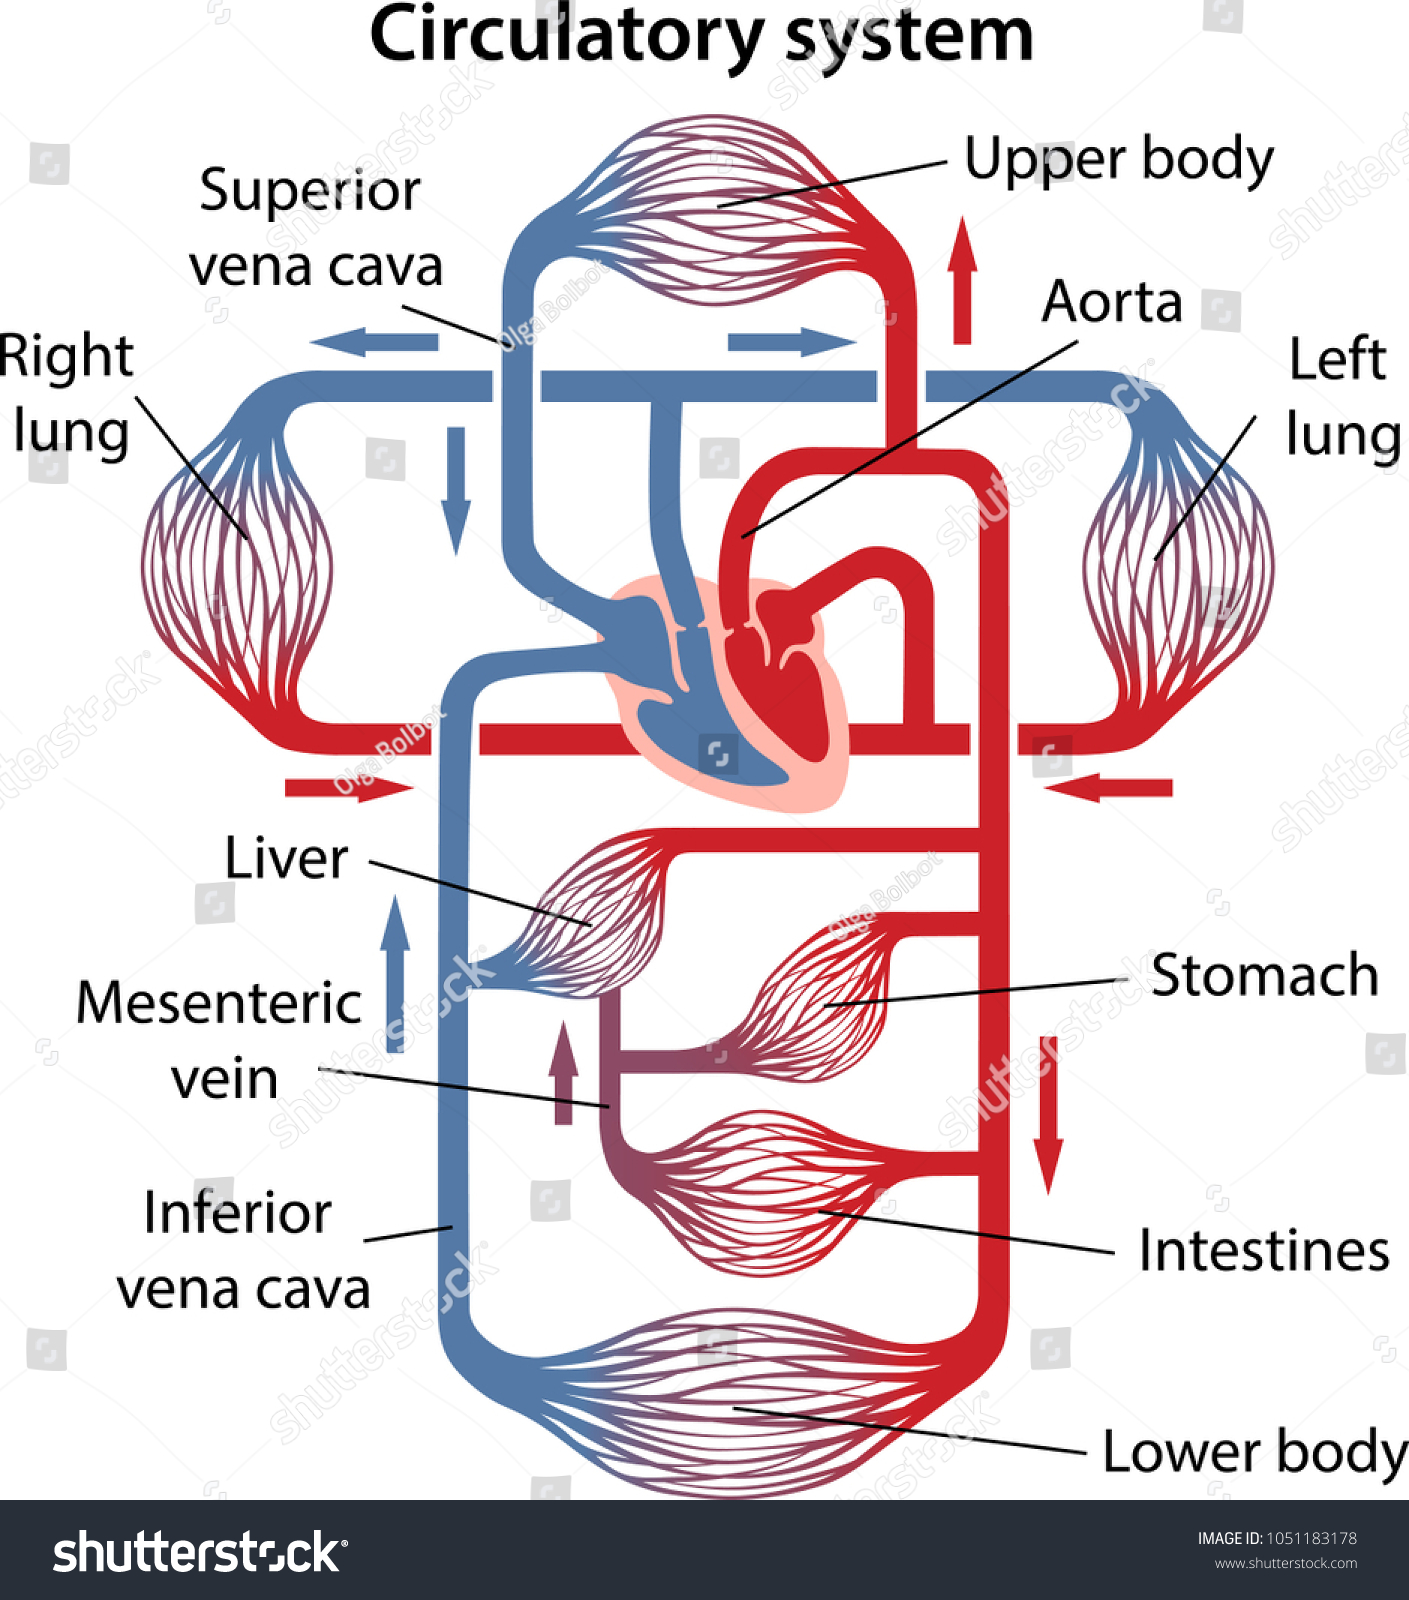 Labeled Diagram Of The Circulatory System